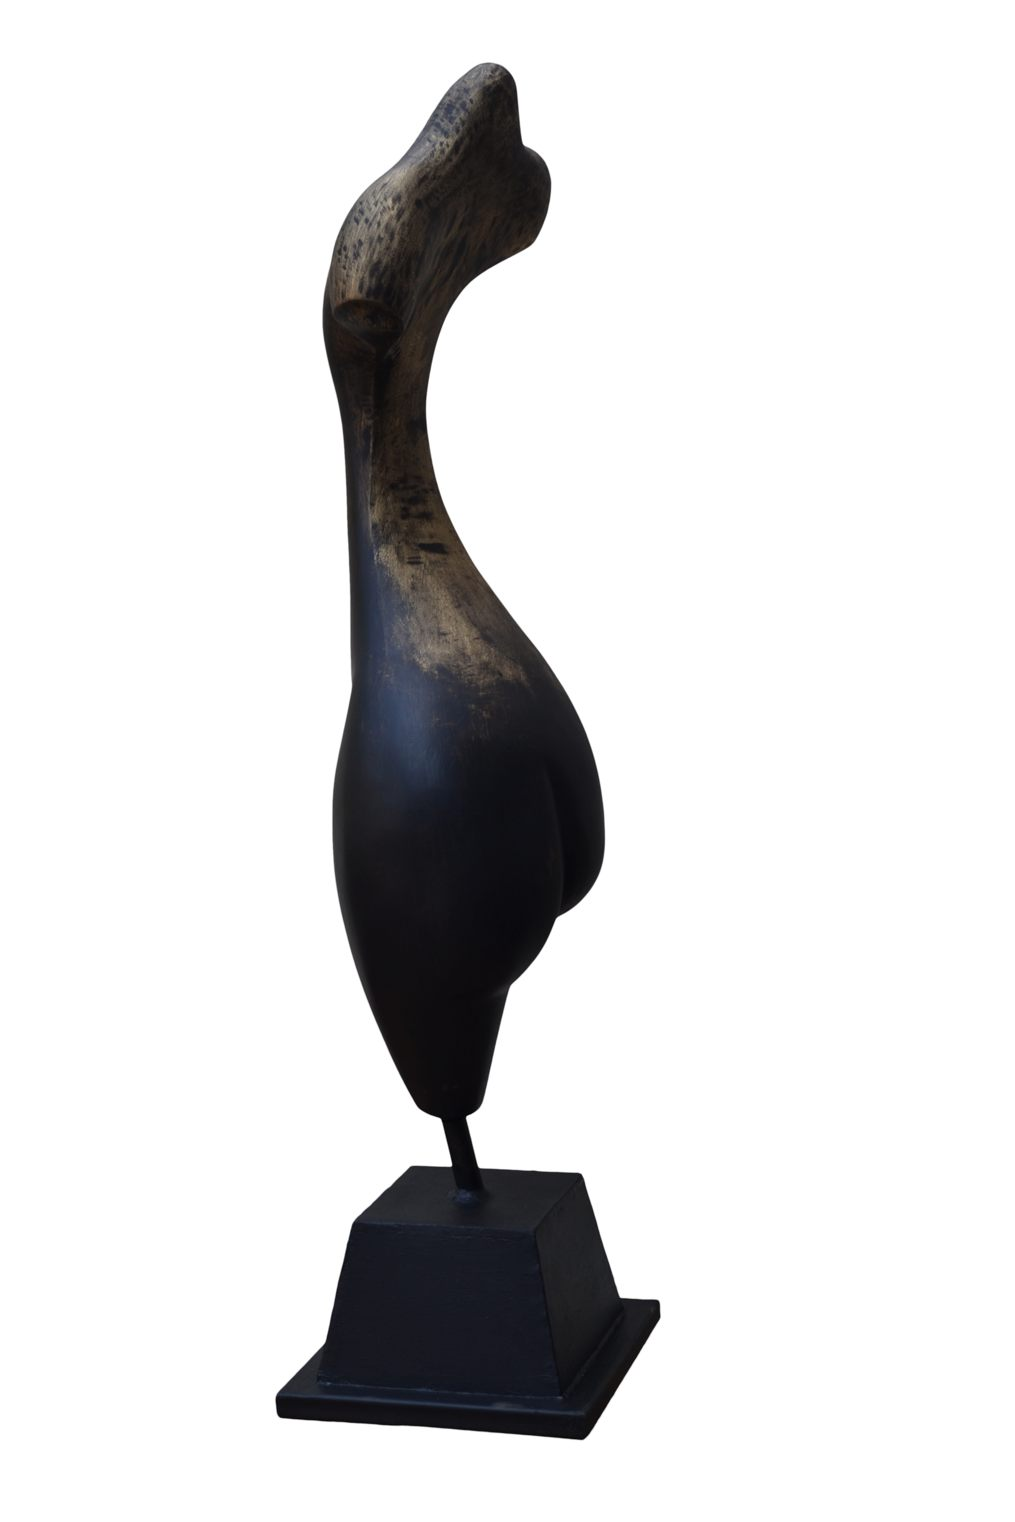 The Seen and Unseen (Metal Cast) Height 3ft (1)